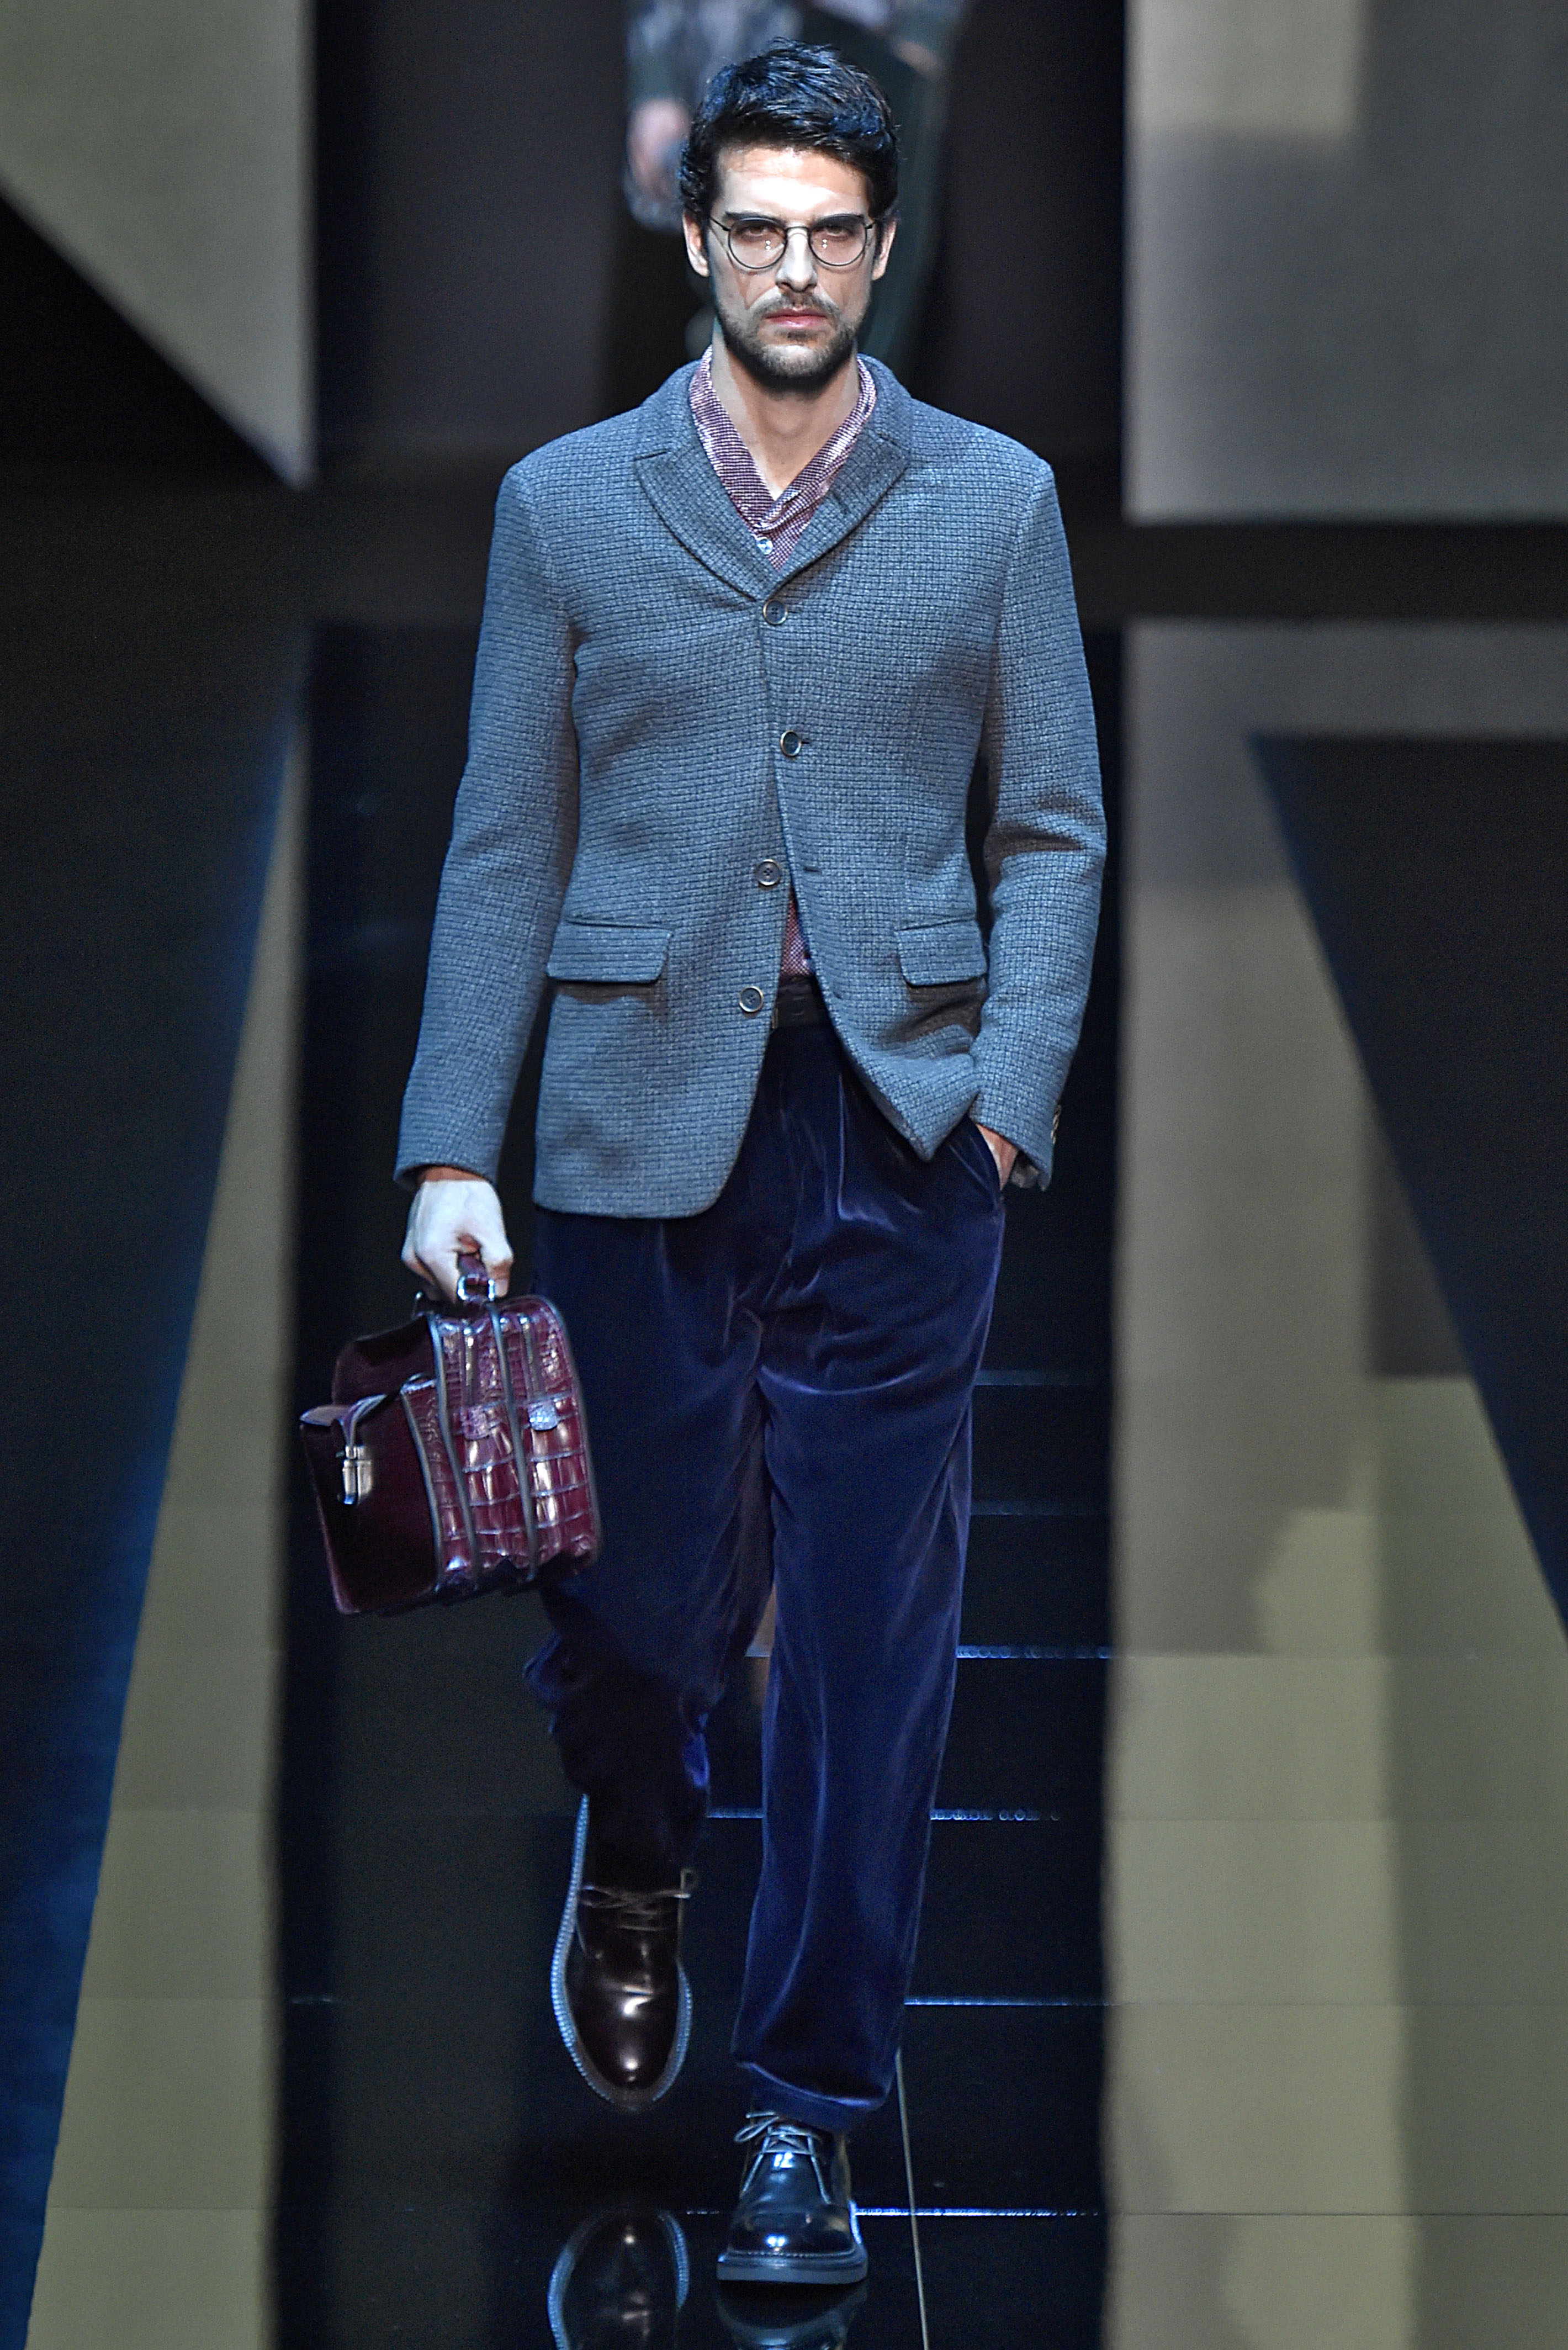 Giorgio Armani Milan Menswear Fall Winter 2017 - January 2017